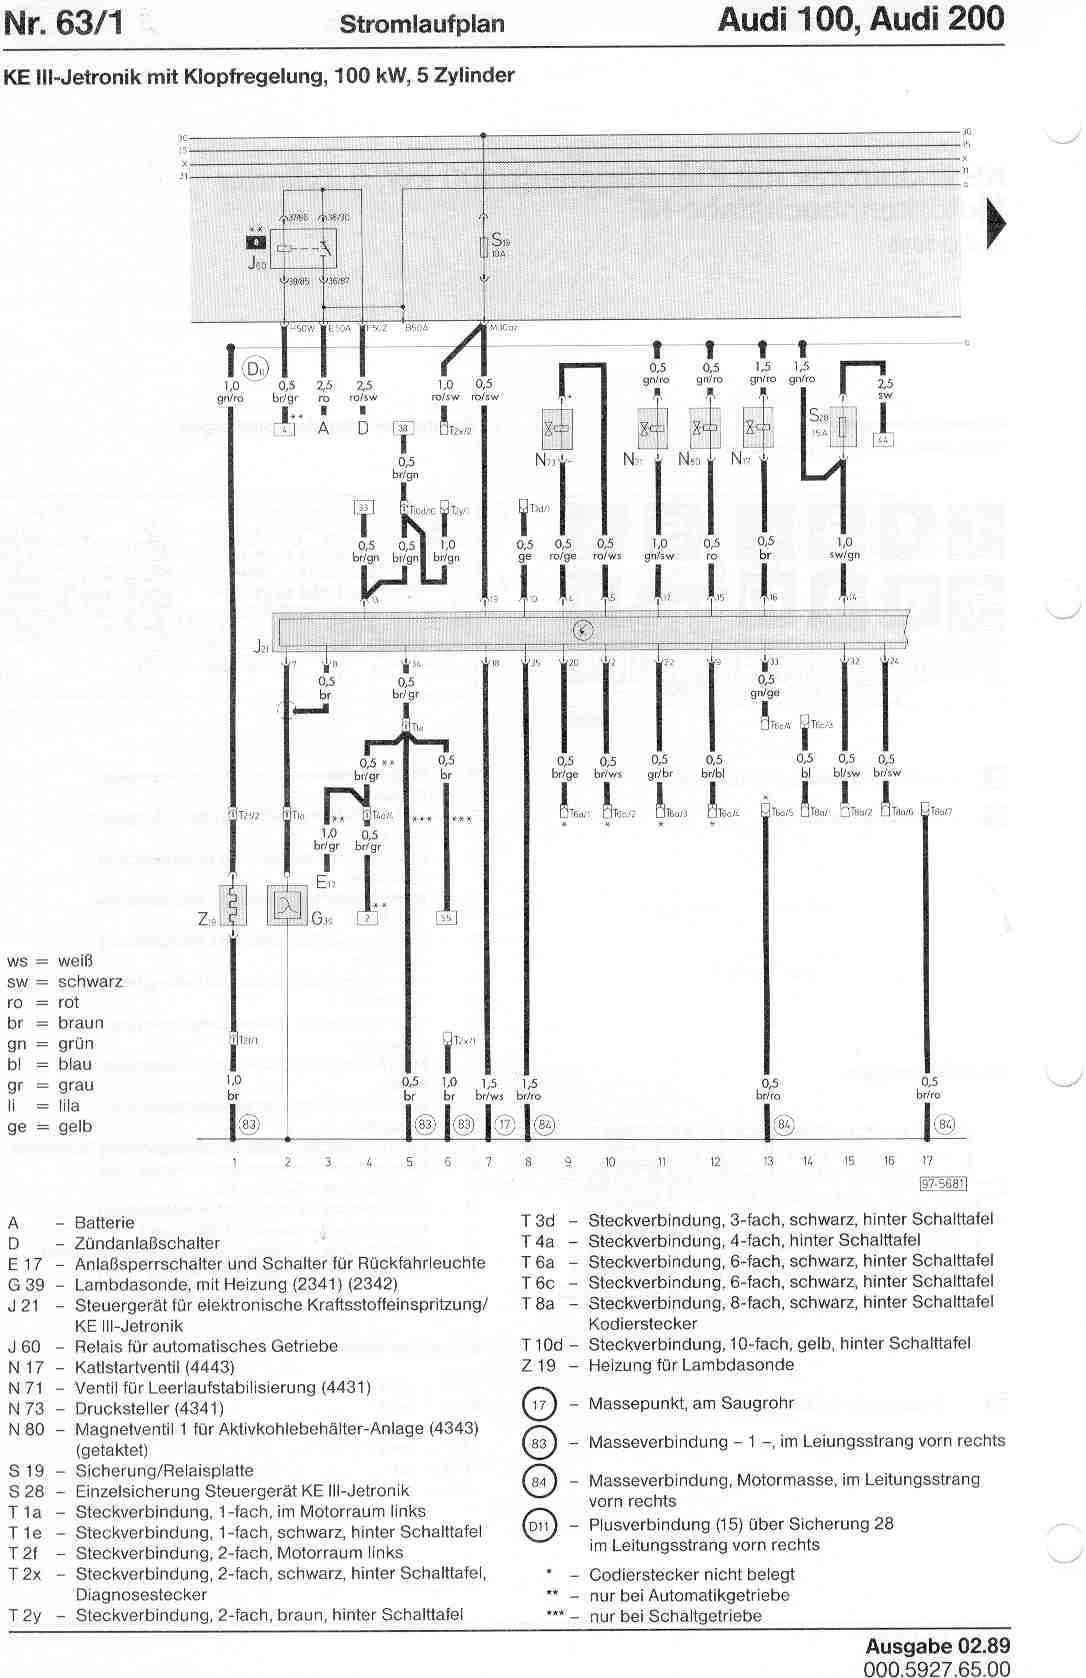 audi a6 c4 wiring diagram chocolate phase 100 200 factory diagrams